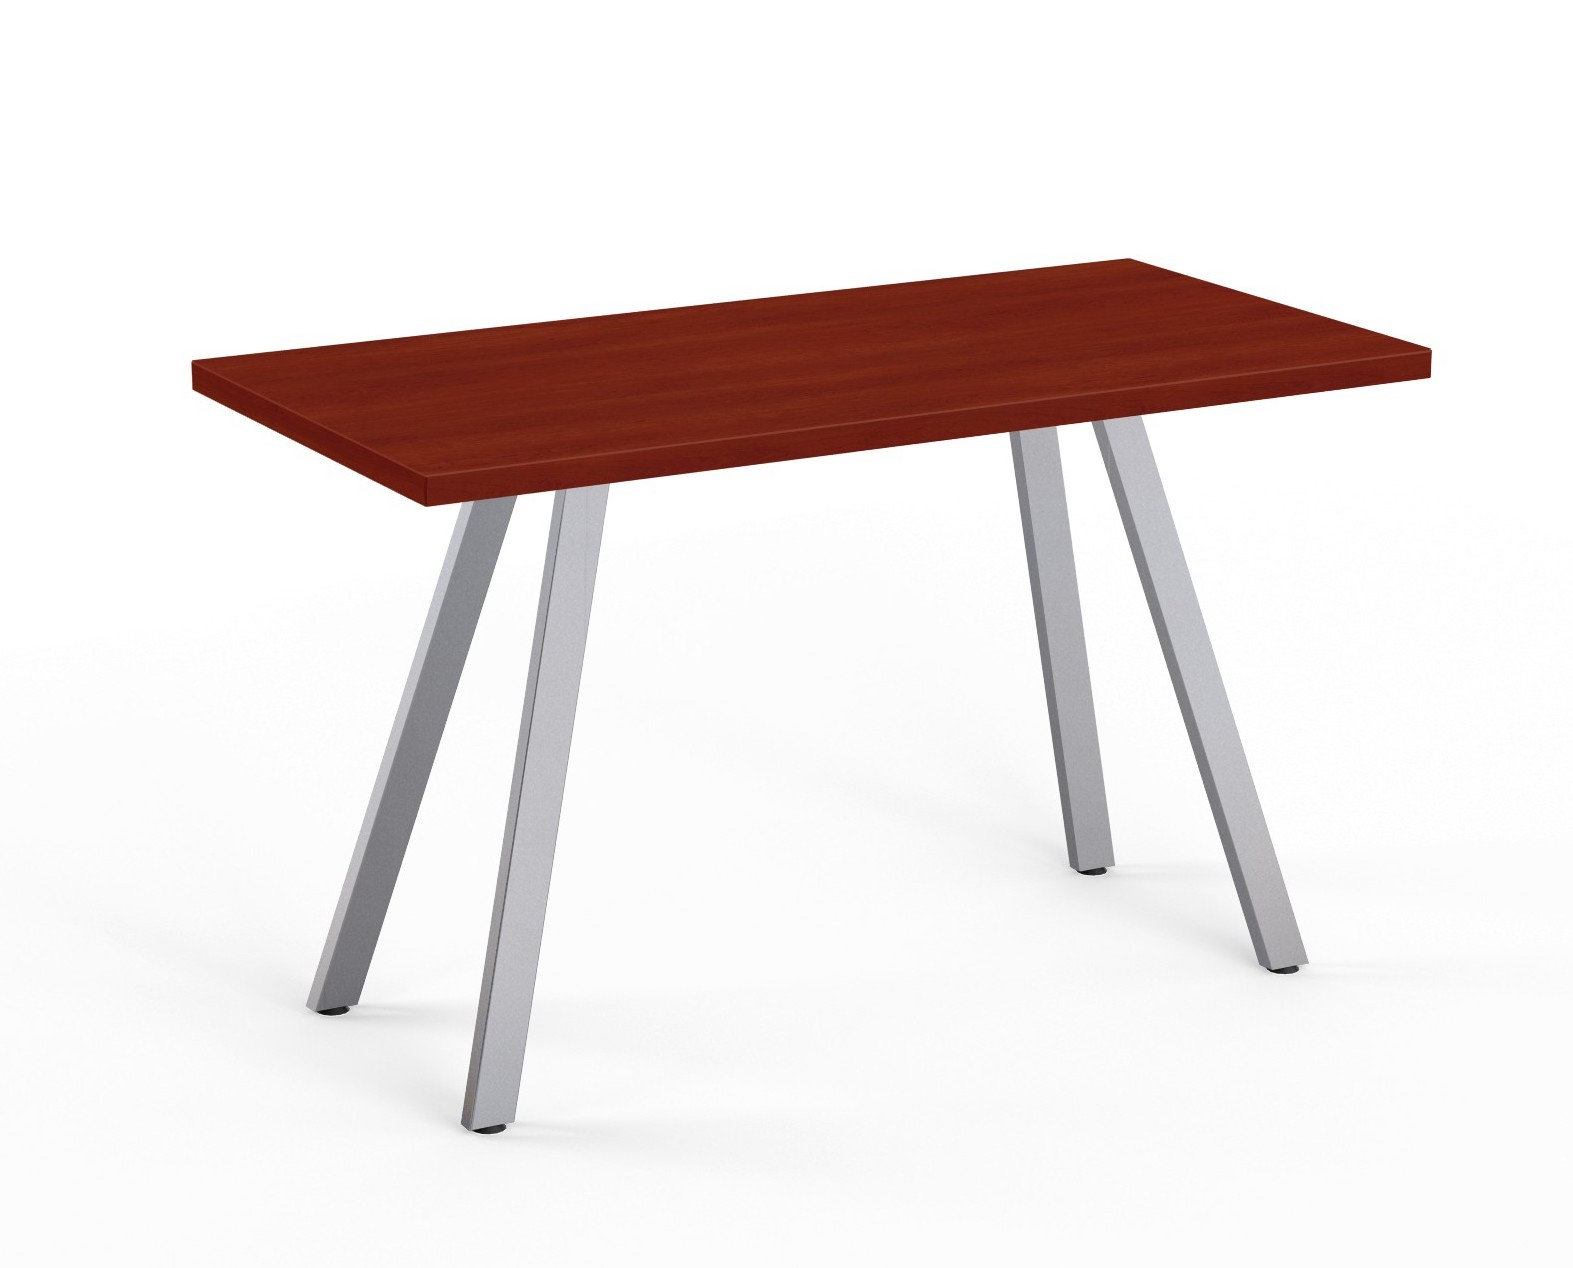 cherry aim table by special-t